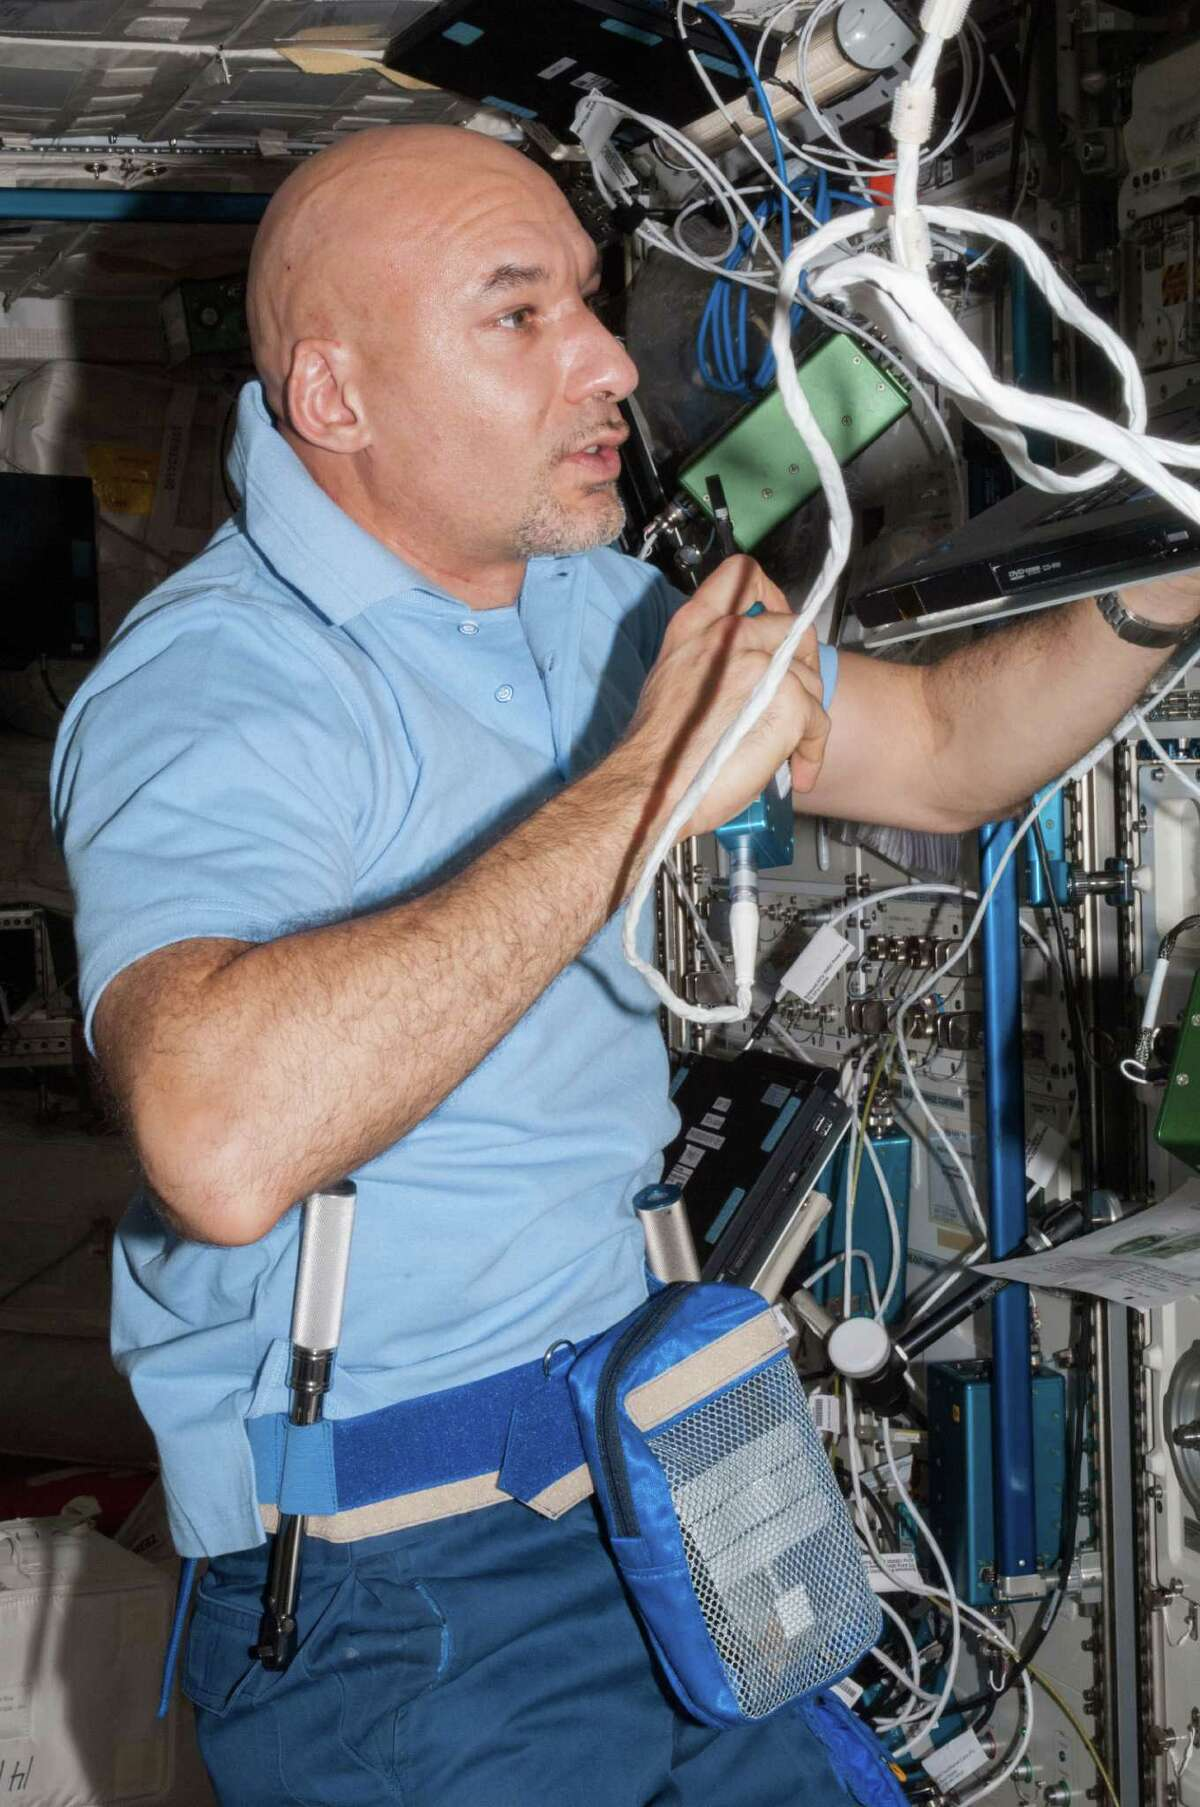 European Space Agency astronaut Luca Parmitano is shown at work in the International Space Station a week after he nearly drowned during a spacewalk on July 16.